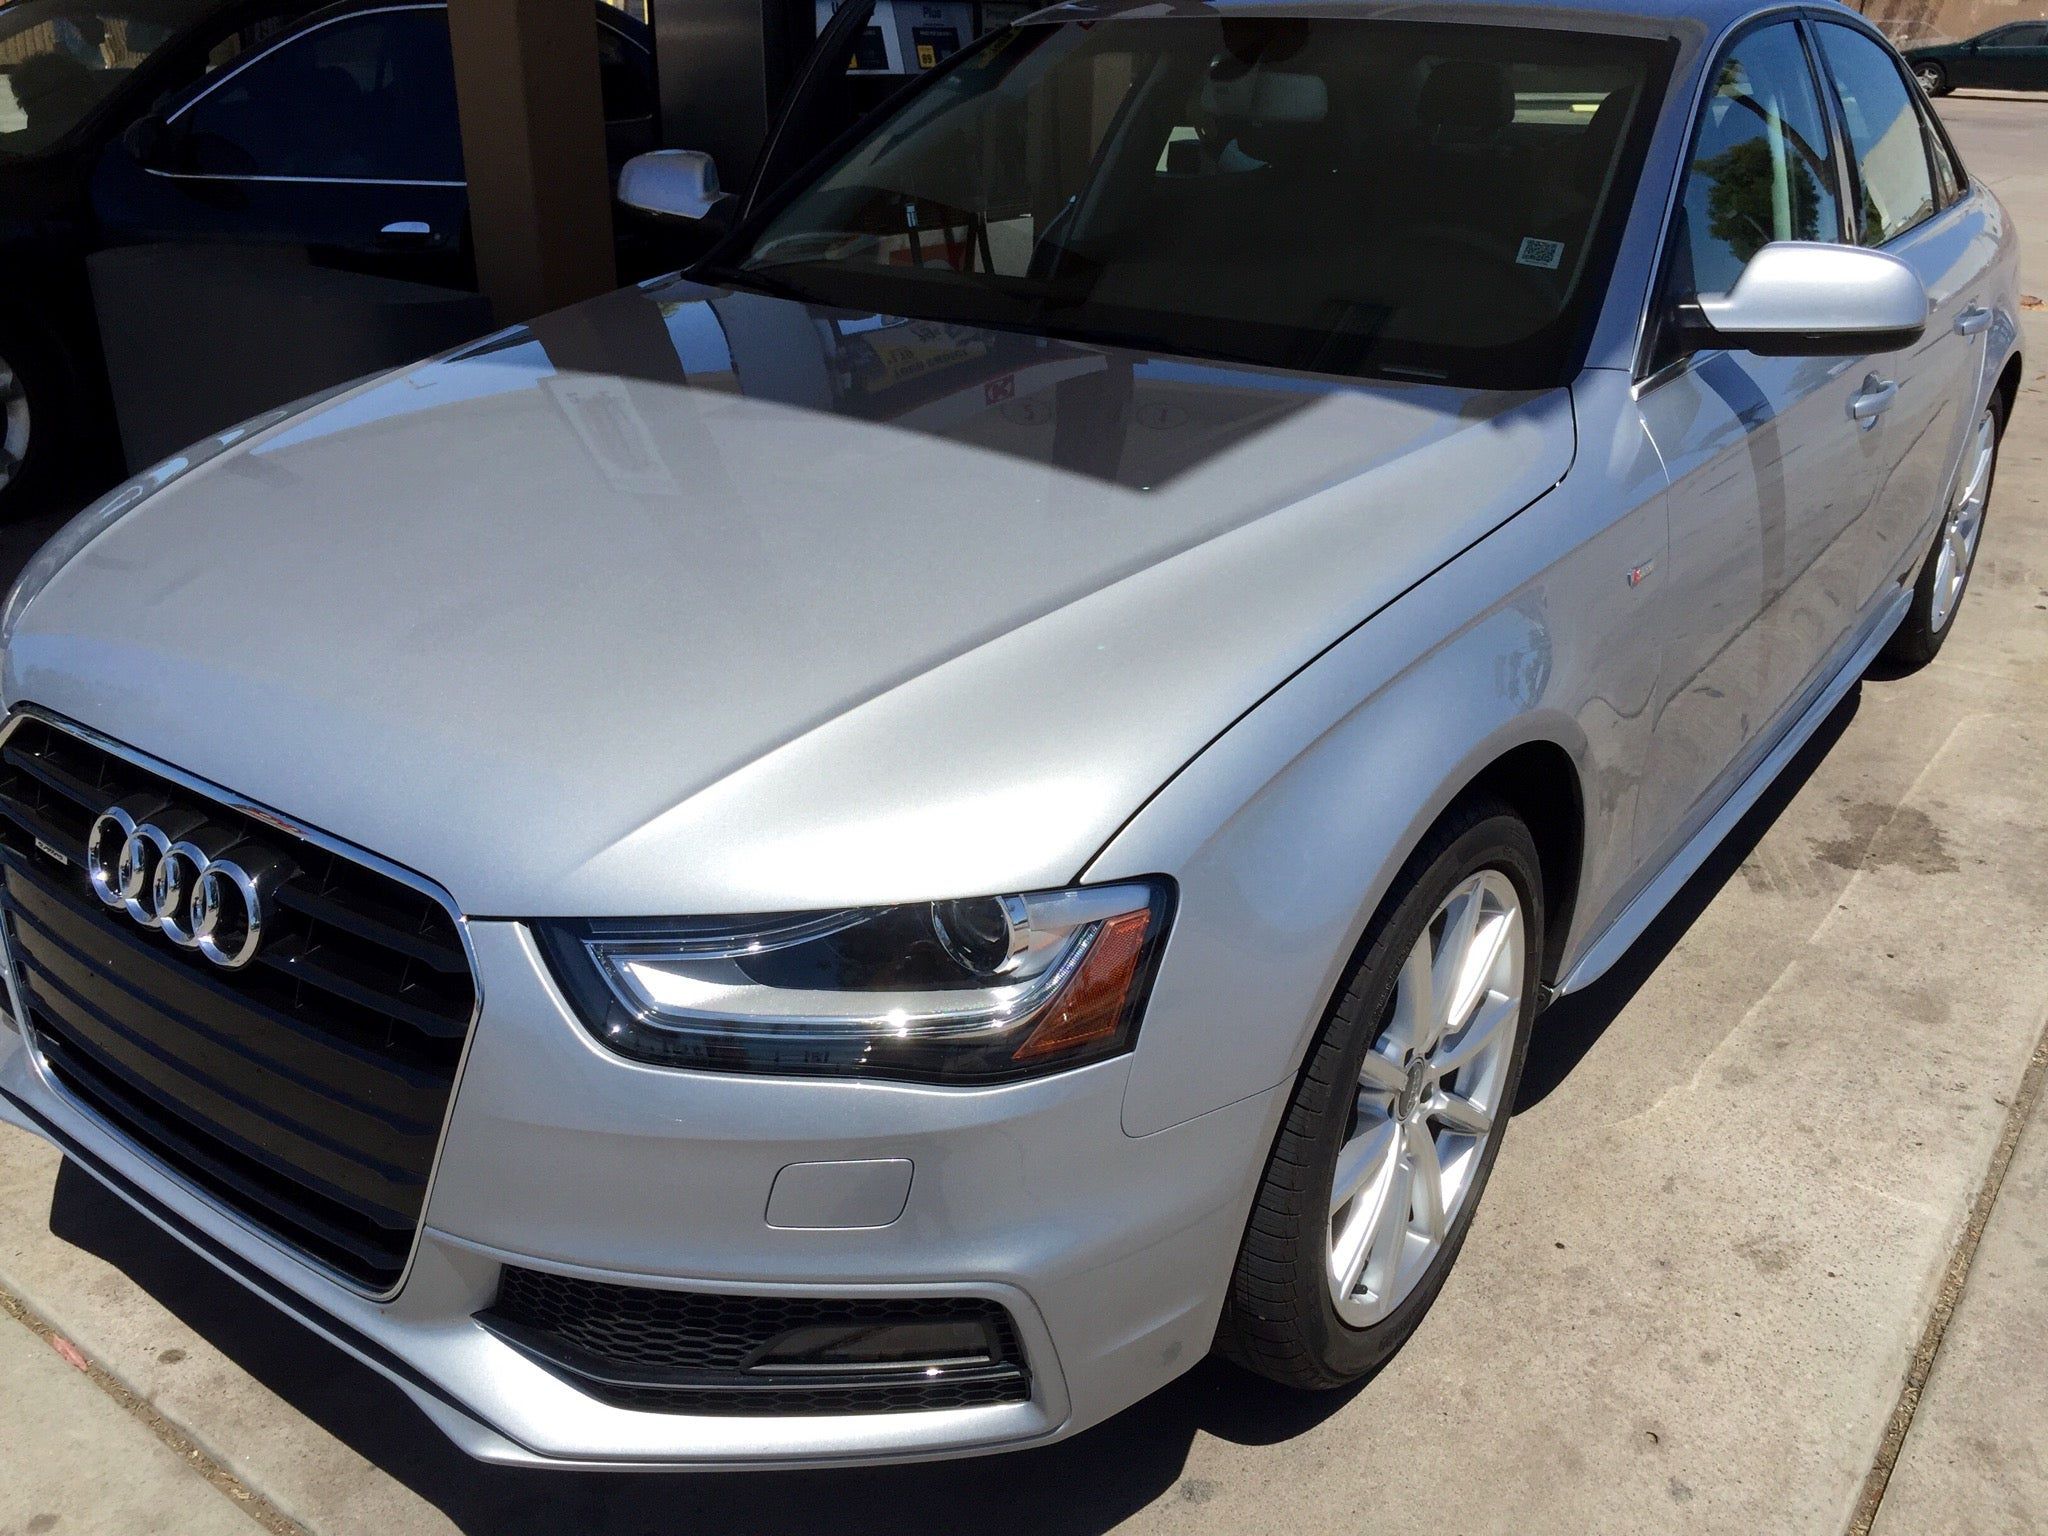 Renting From Silvercar With A Family Review Discounts The - Audi rental cars